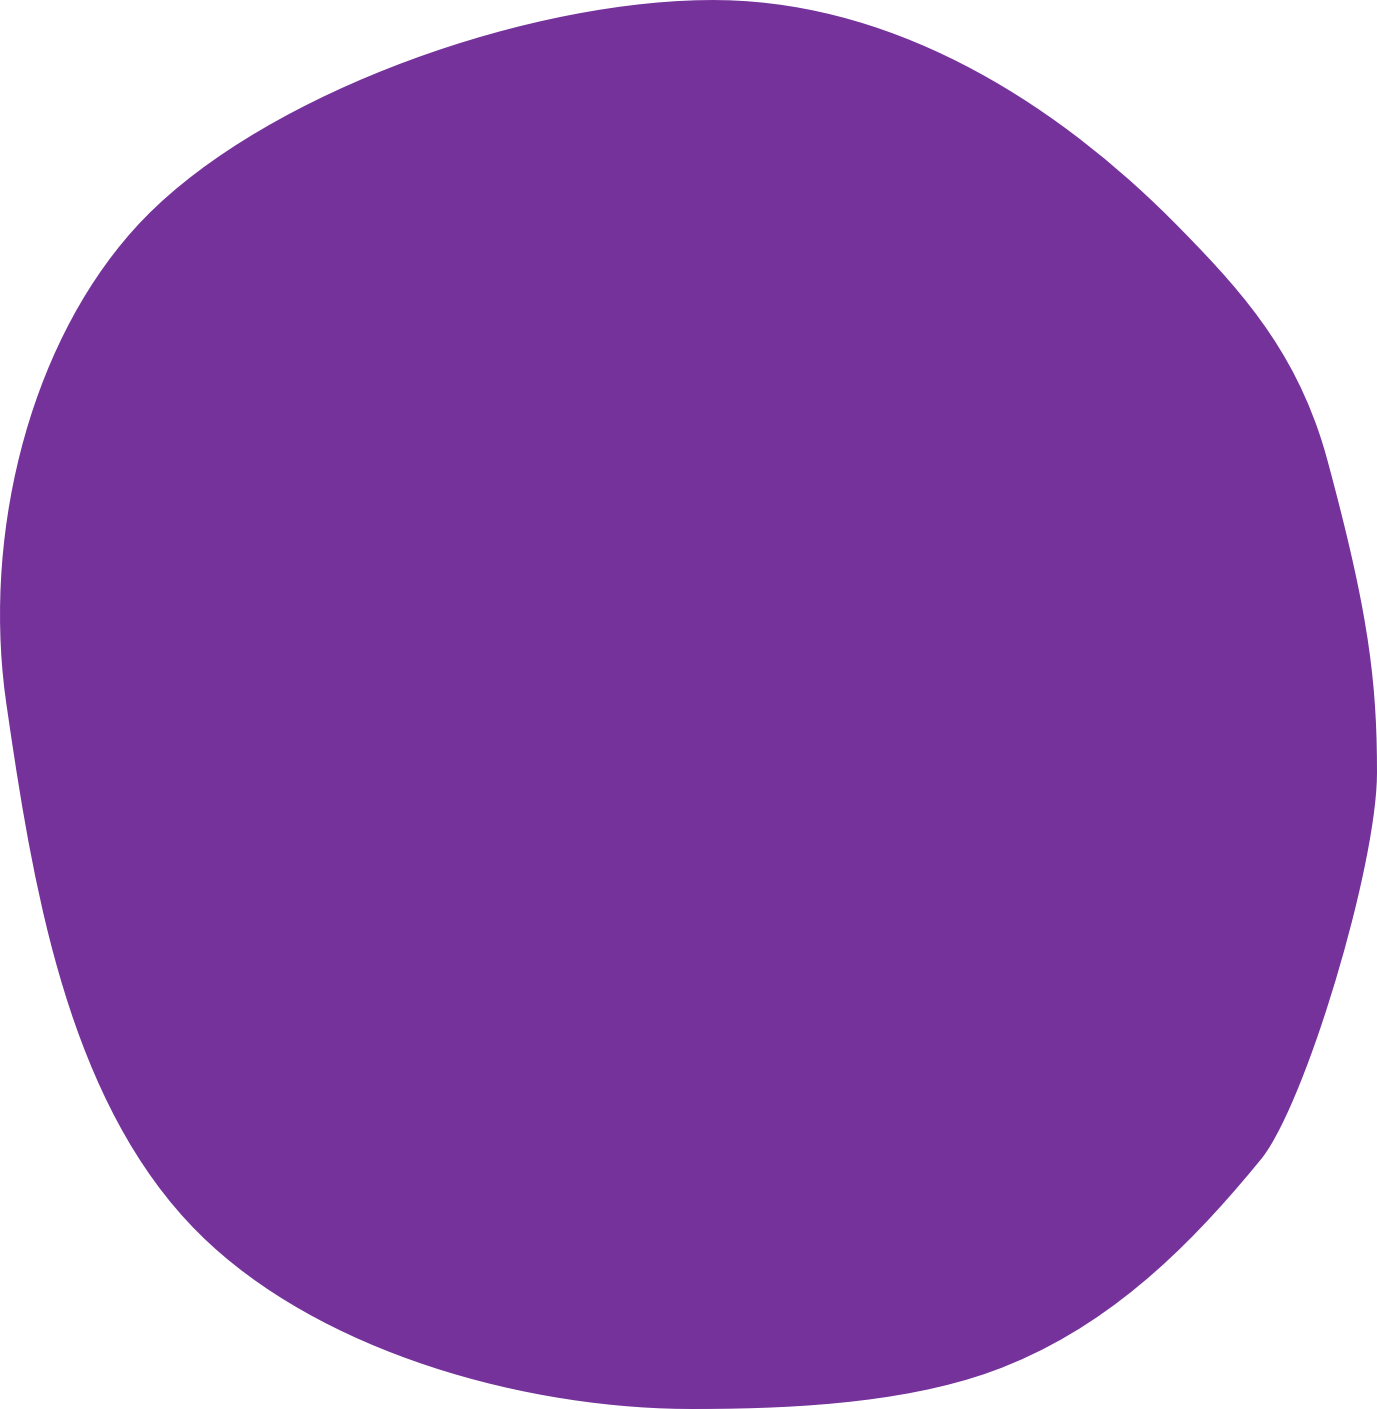 Oval 3 Copy.png